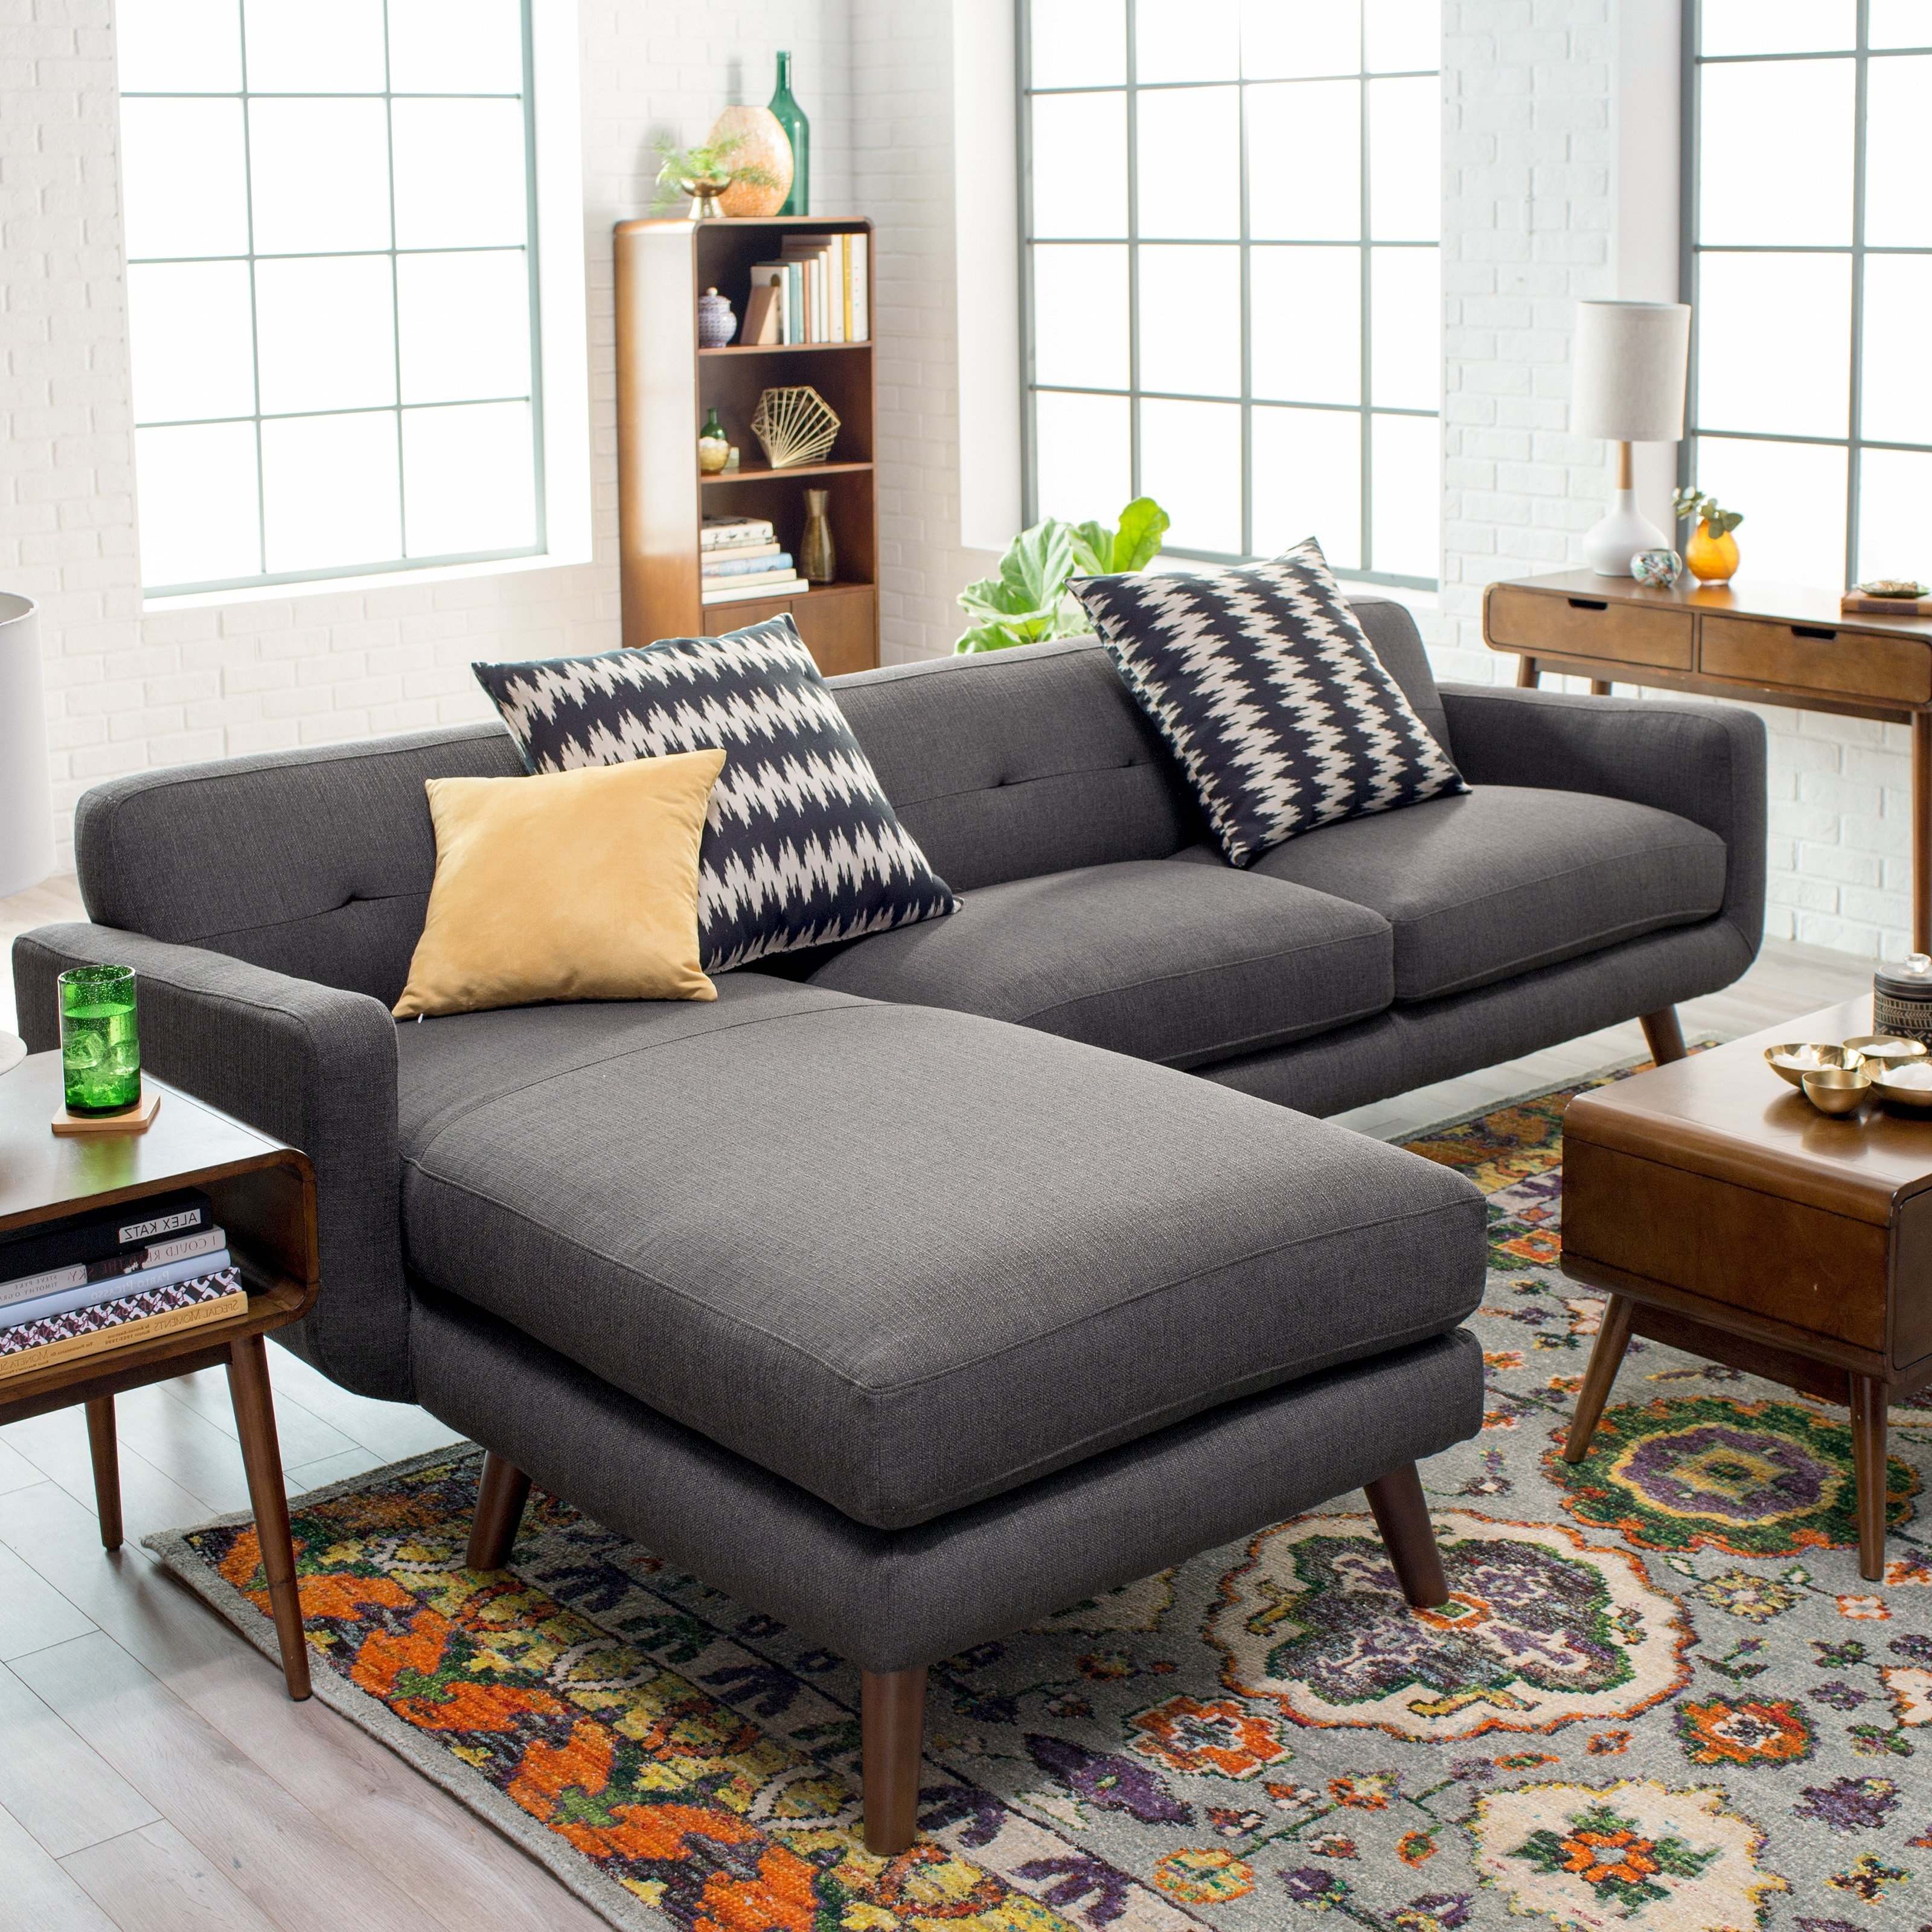 Hayneedle With Regard To 100X80 Sectional Sofas (View 7 of 15)